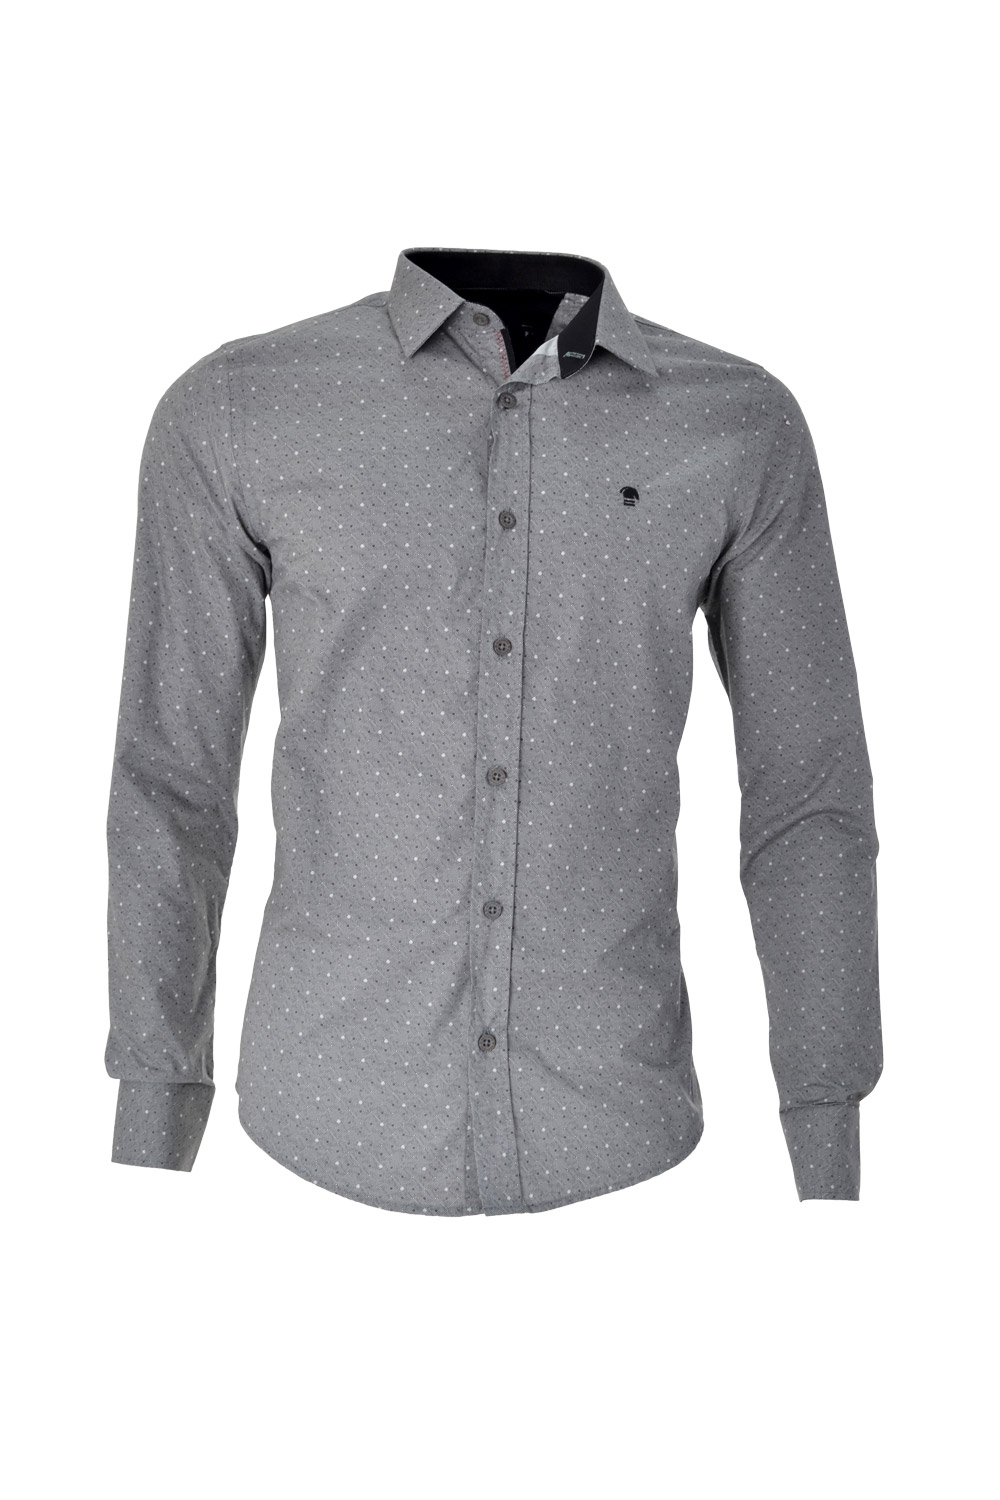 CAMISA ML FASHION SUPER SLIM ALGODAO FIO TINTO ESTAMPA PRETO